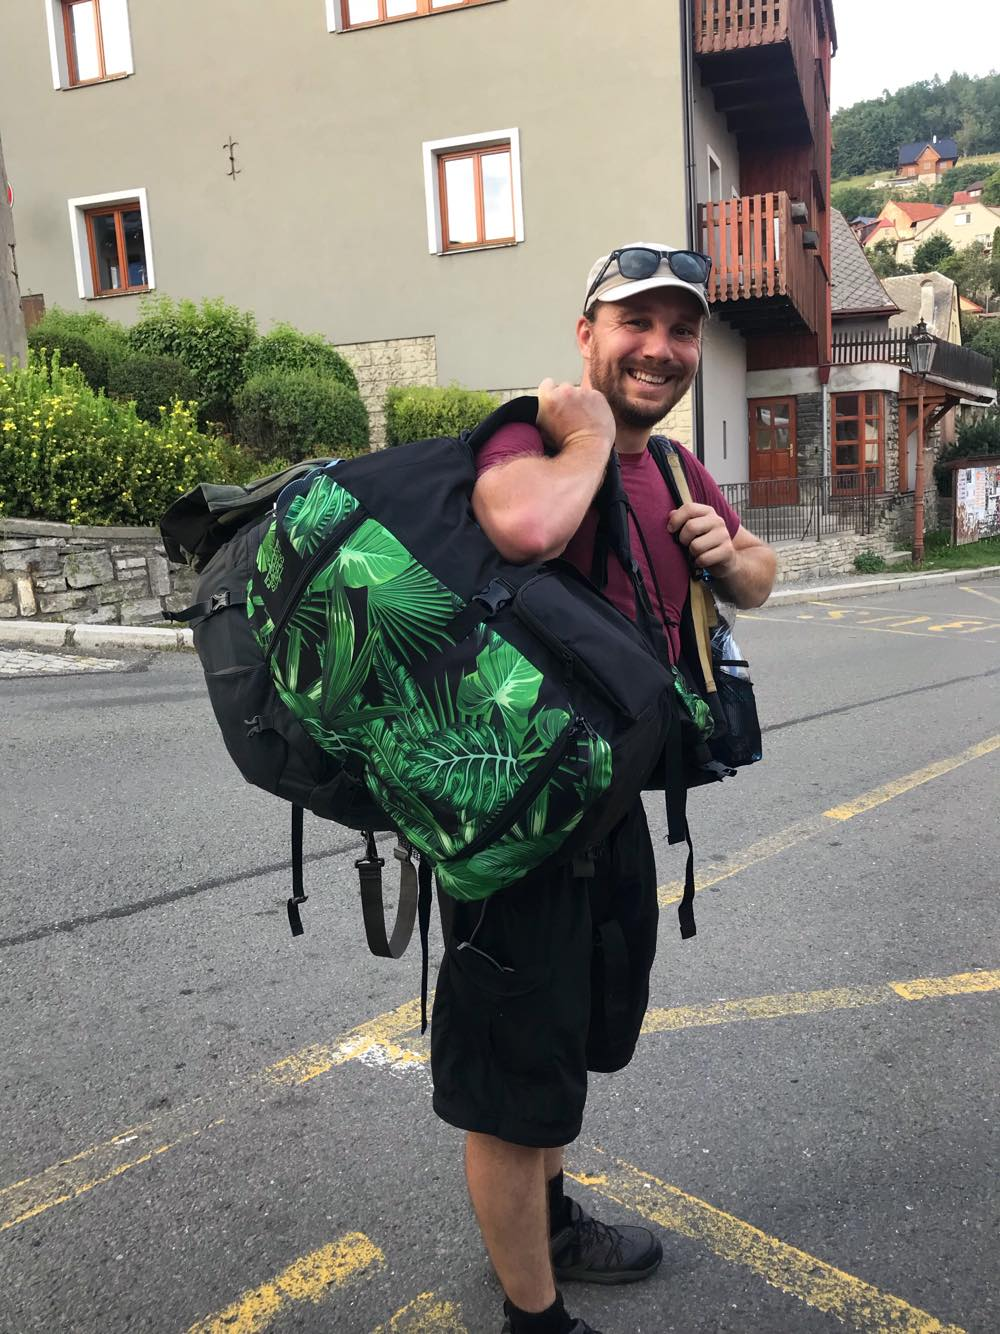 An easy to carry bag